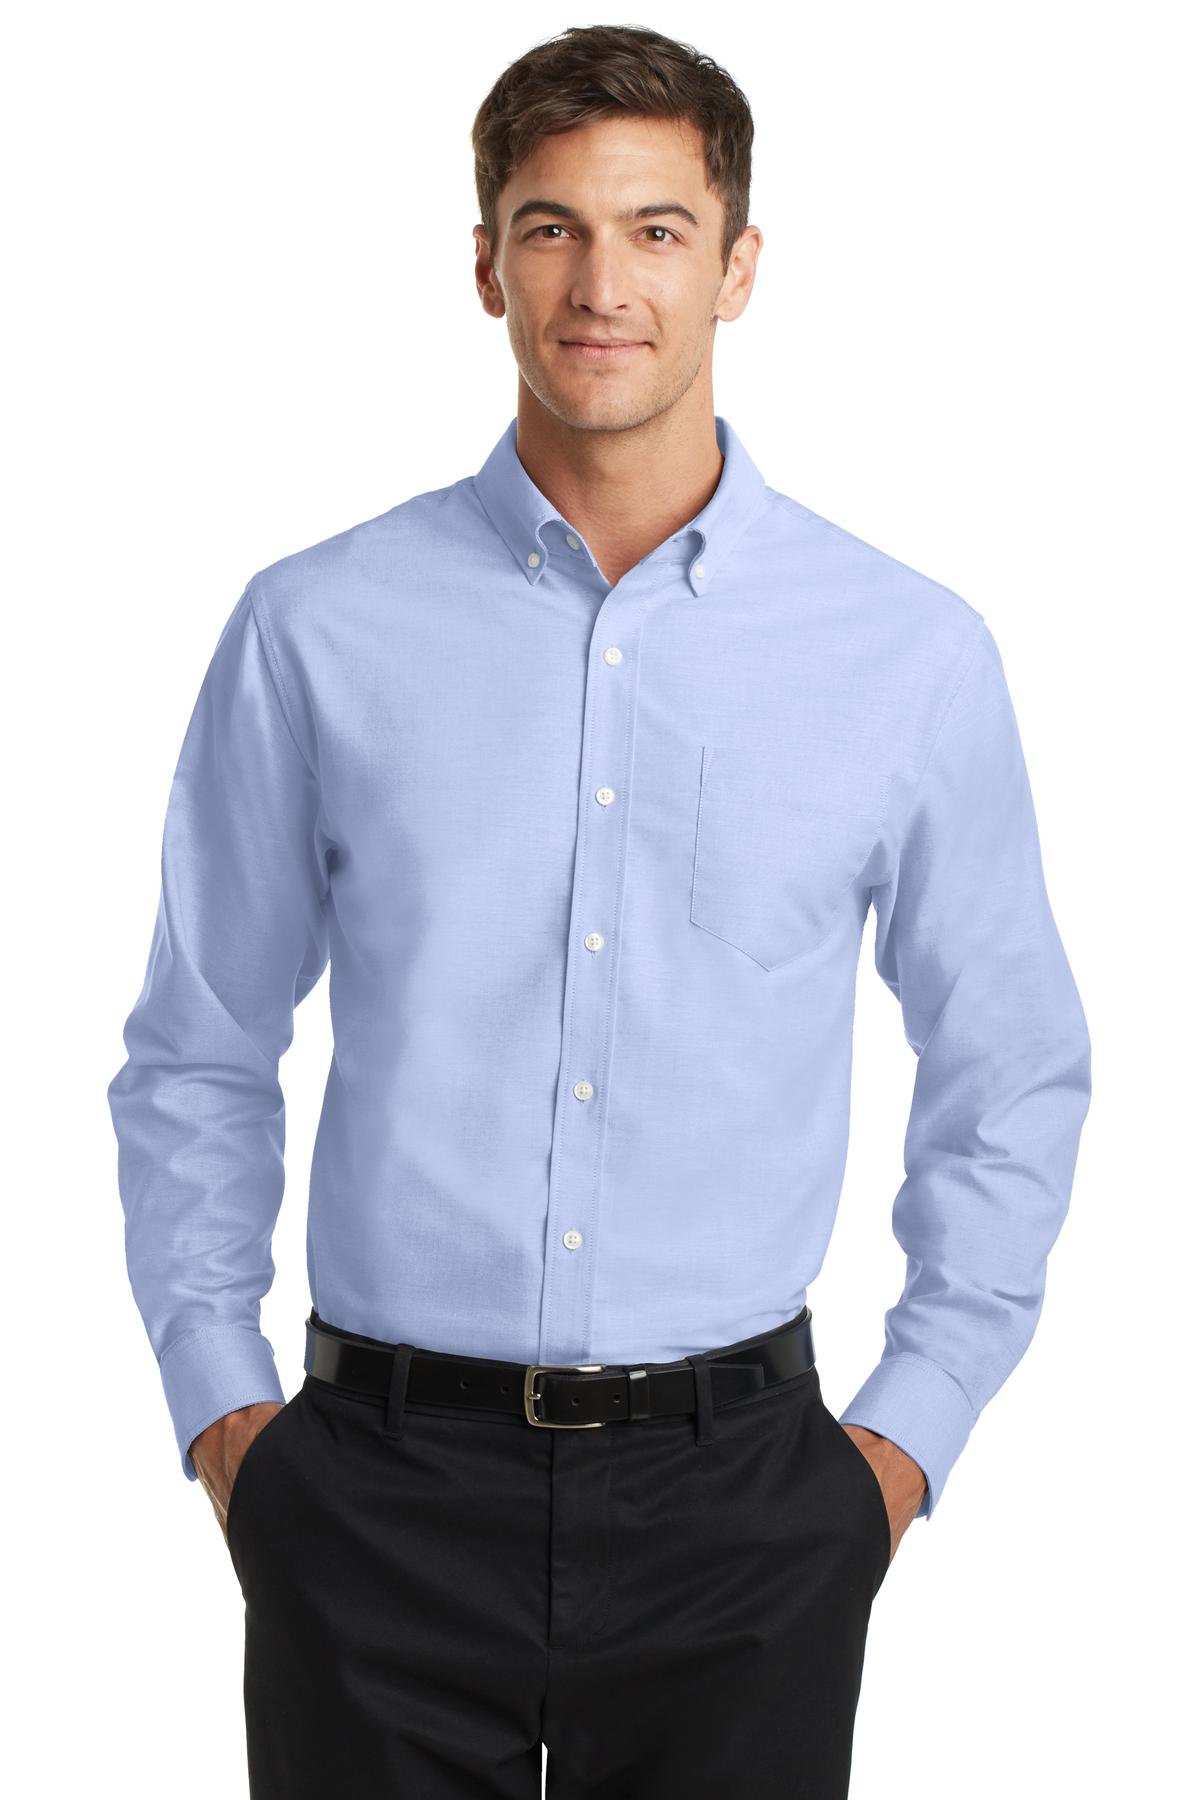 Cool Grey Port Authority Tall Silk Touch Long Sleeve Polo.